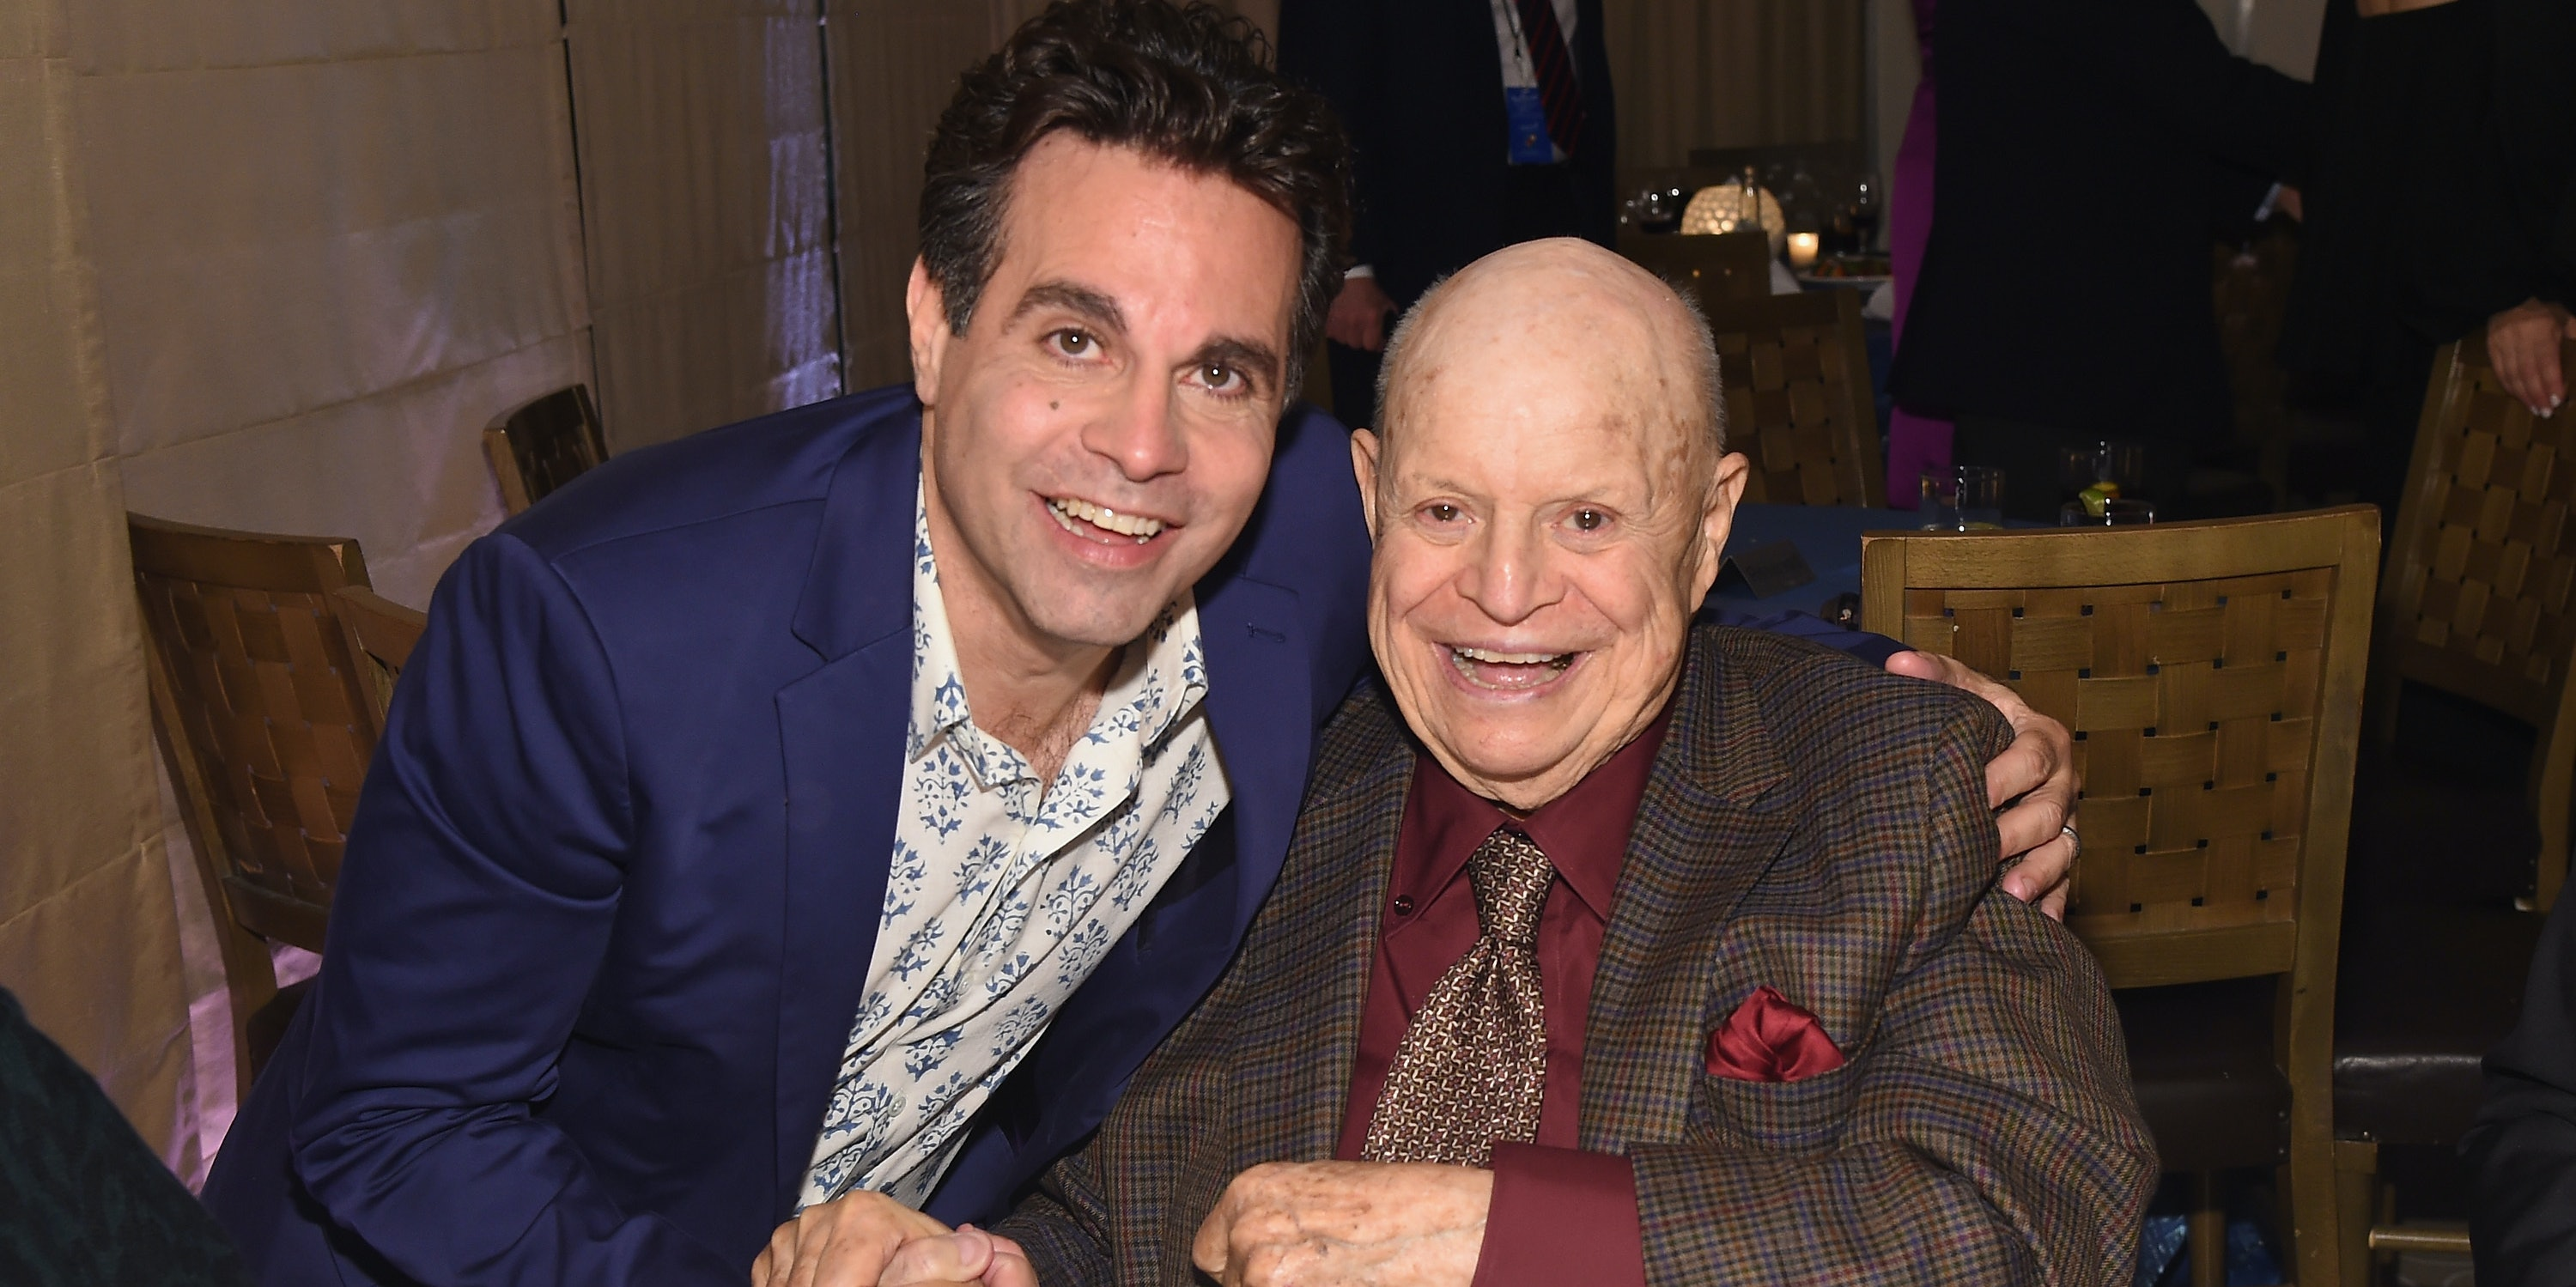 Don Rickles died Thursday, at 90 years old.